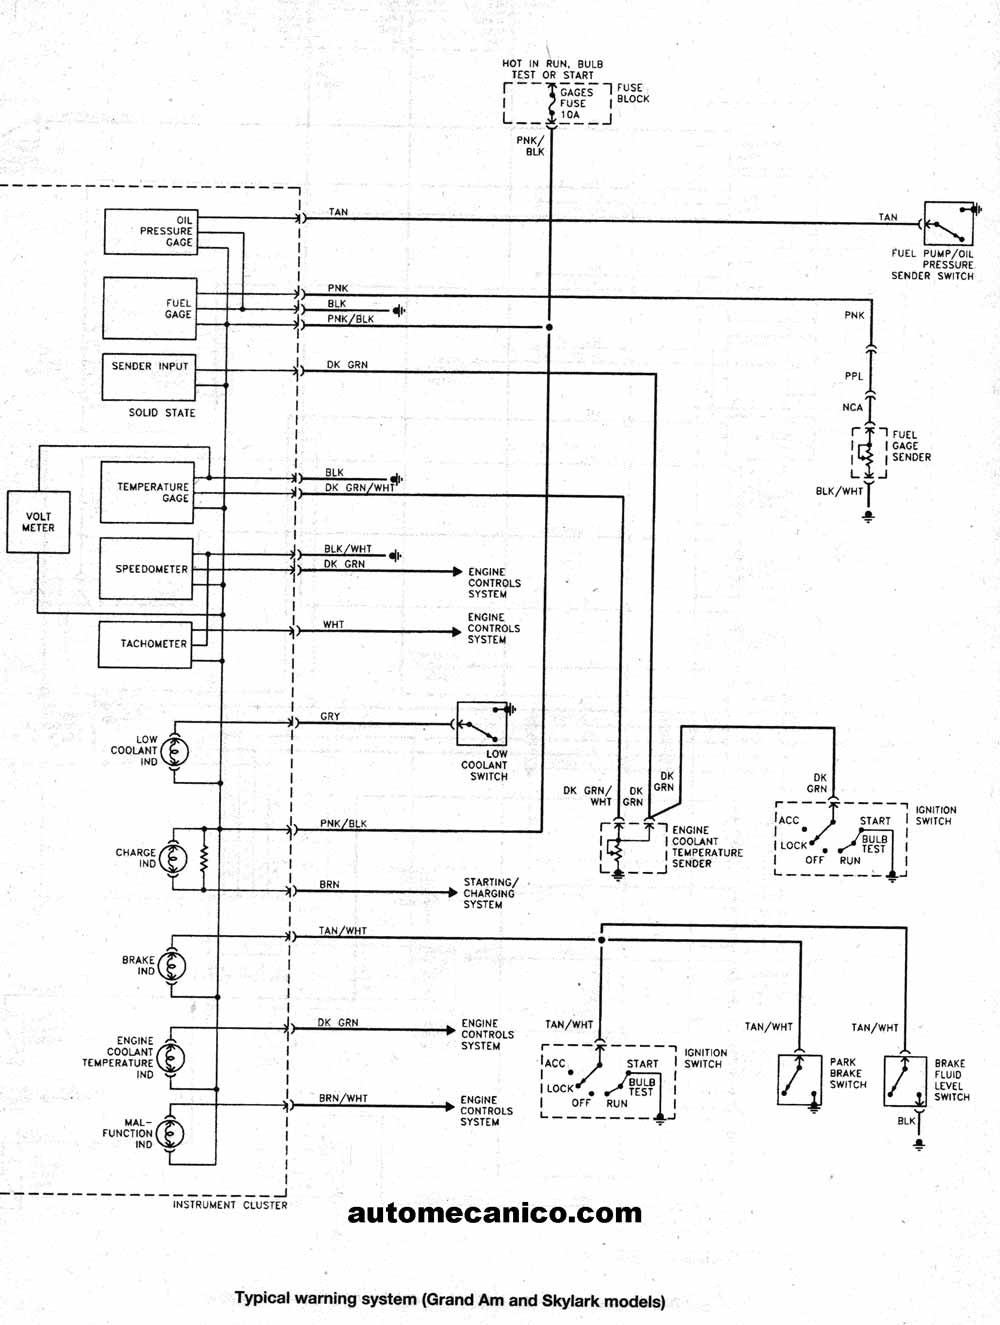 pontiac grand am wiring diagram on 2000 sunfire with Diagramasgm on 1532407 Blinker Signal Problems as well Discussion T9501 ds560154 moreover 2004 Gm Radio Wiring Harness Adapter besides Fuse Box Diagram For 2000 Pontiac Sunfire together with 7pn6w Pontiac Sunfire Starter Wiring Problem.